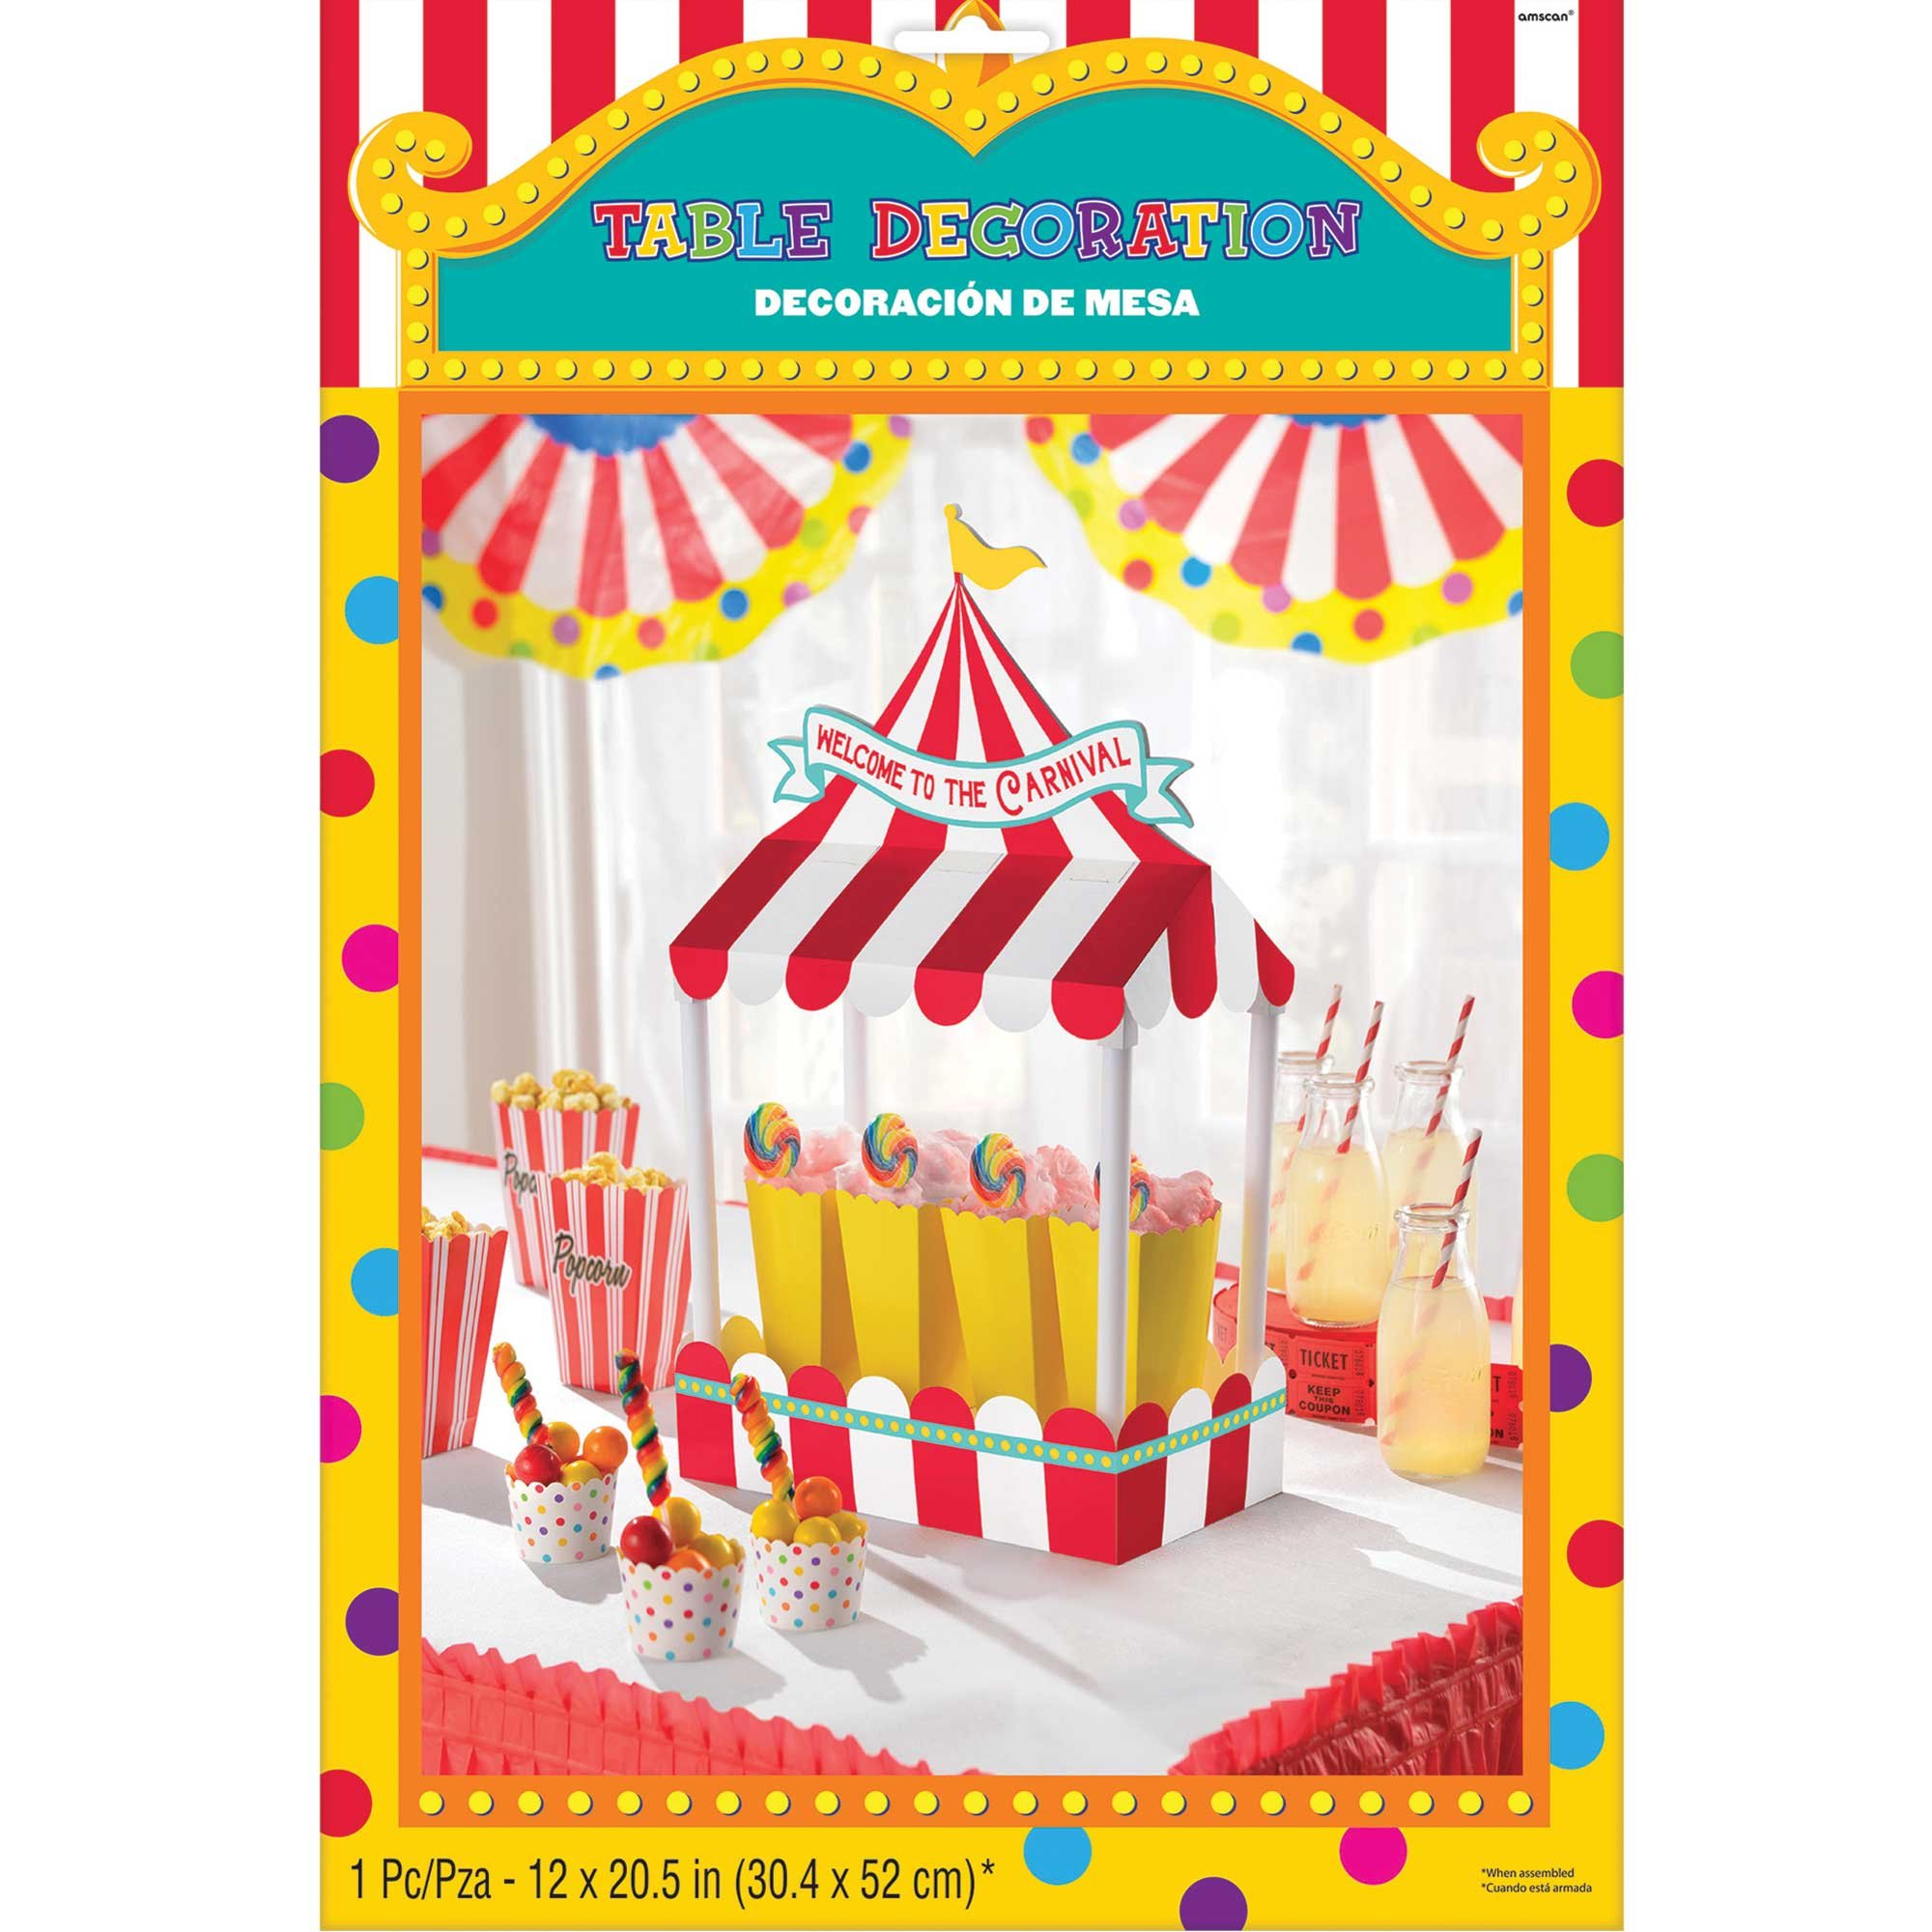 Carnival Games Table Decoration Welcome To The Carnival 53cm x 17cm